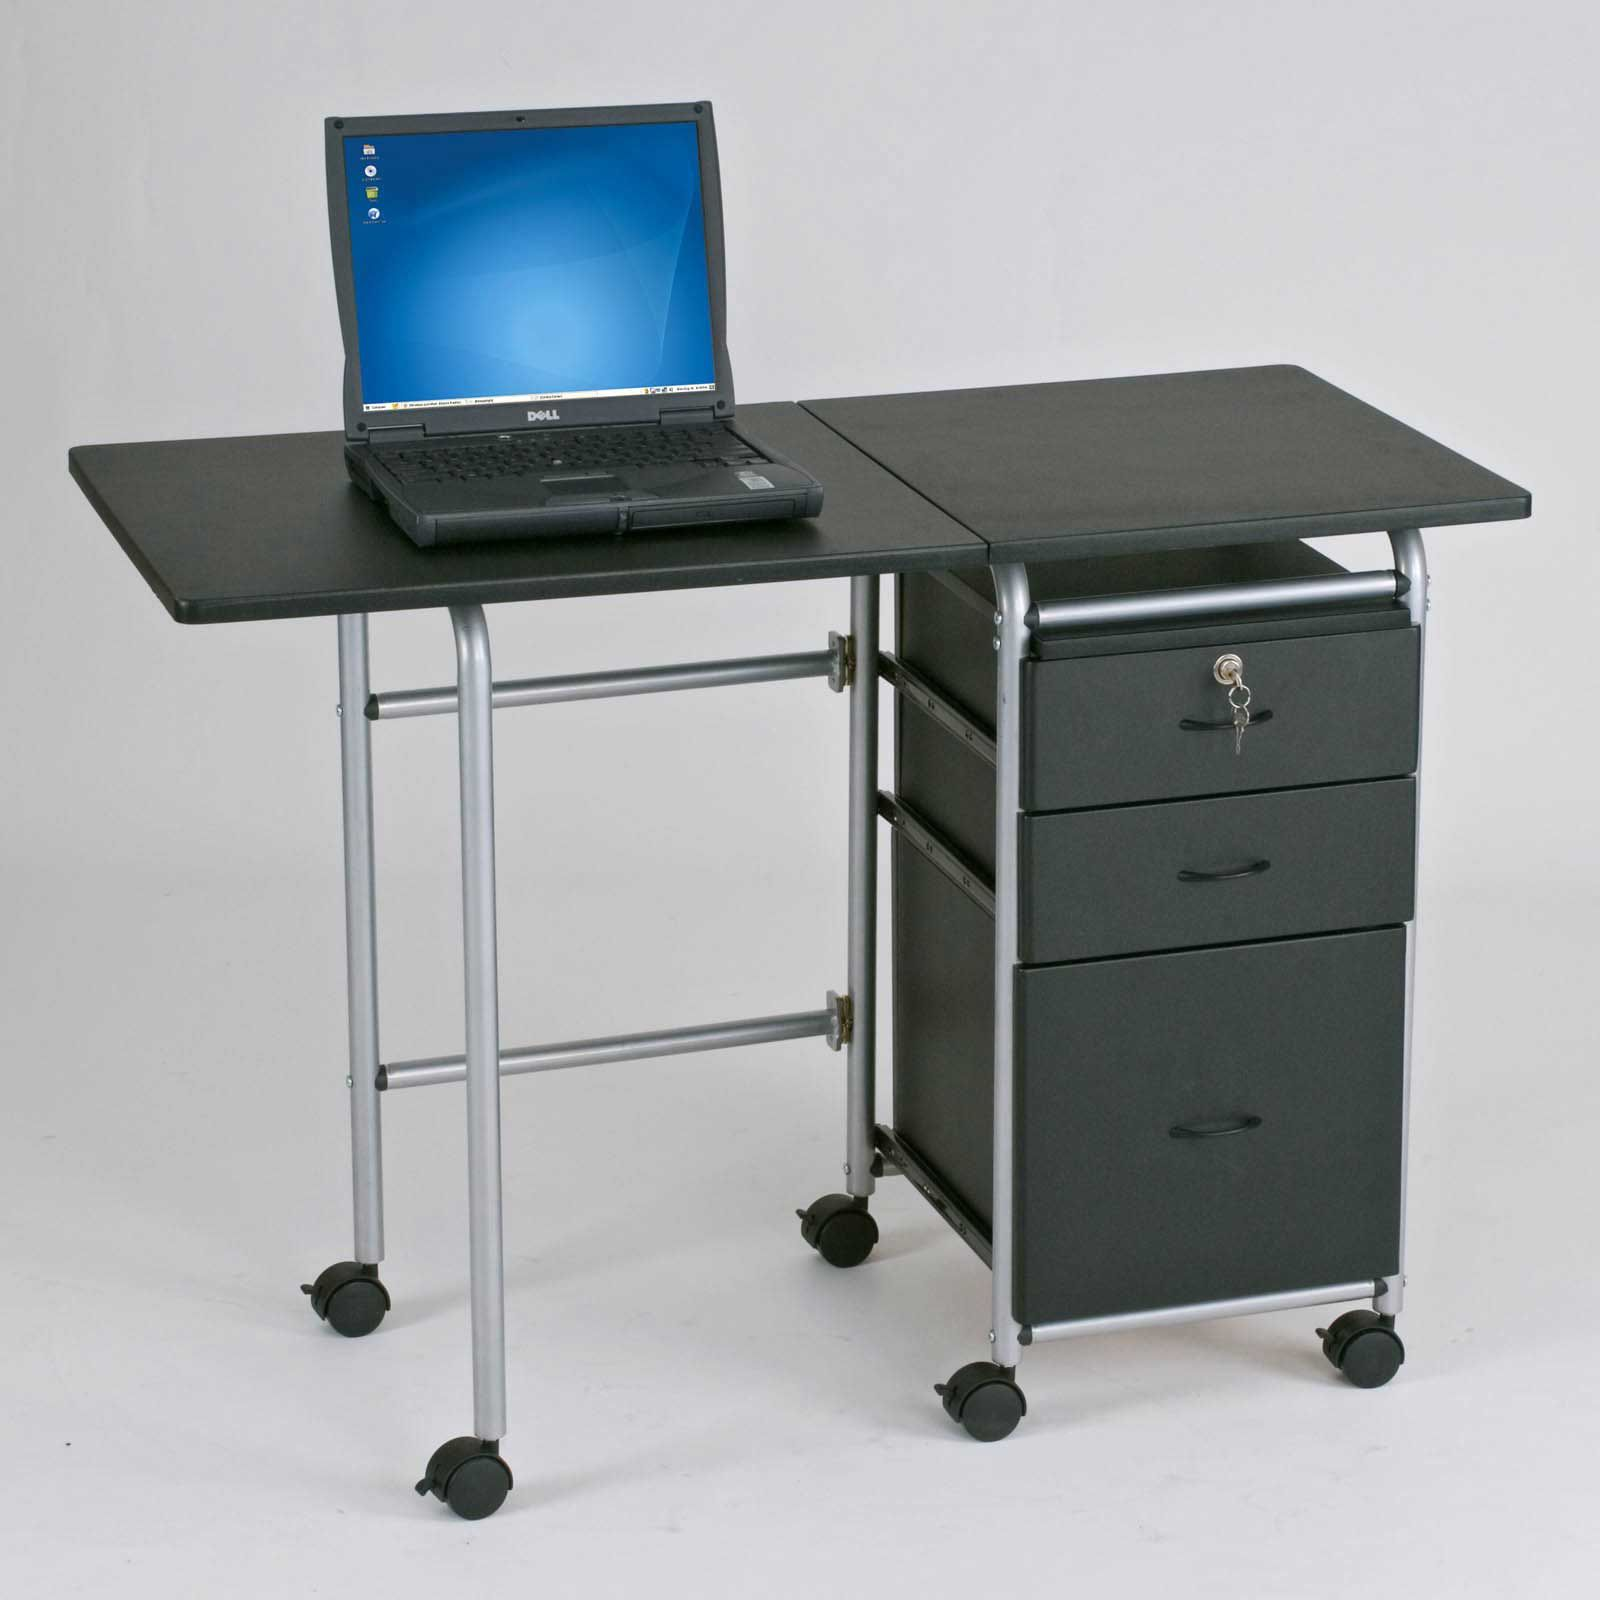 Small Portable Computer Desk Desk Decorating Ideas On A Budget Check More At Http Www Gameintow Best Home Office Desk Small Office Desk Small Computer Desk